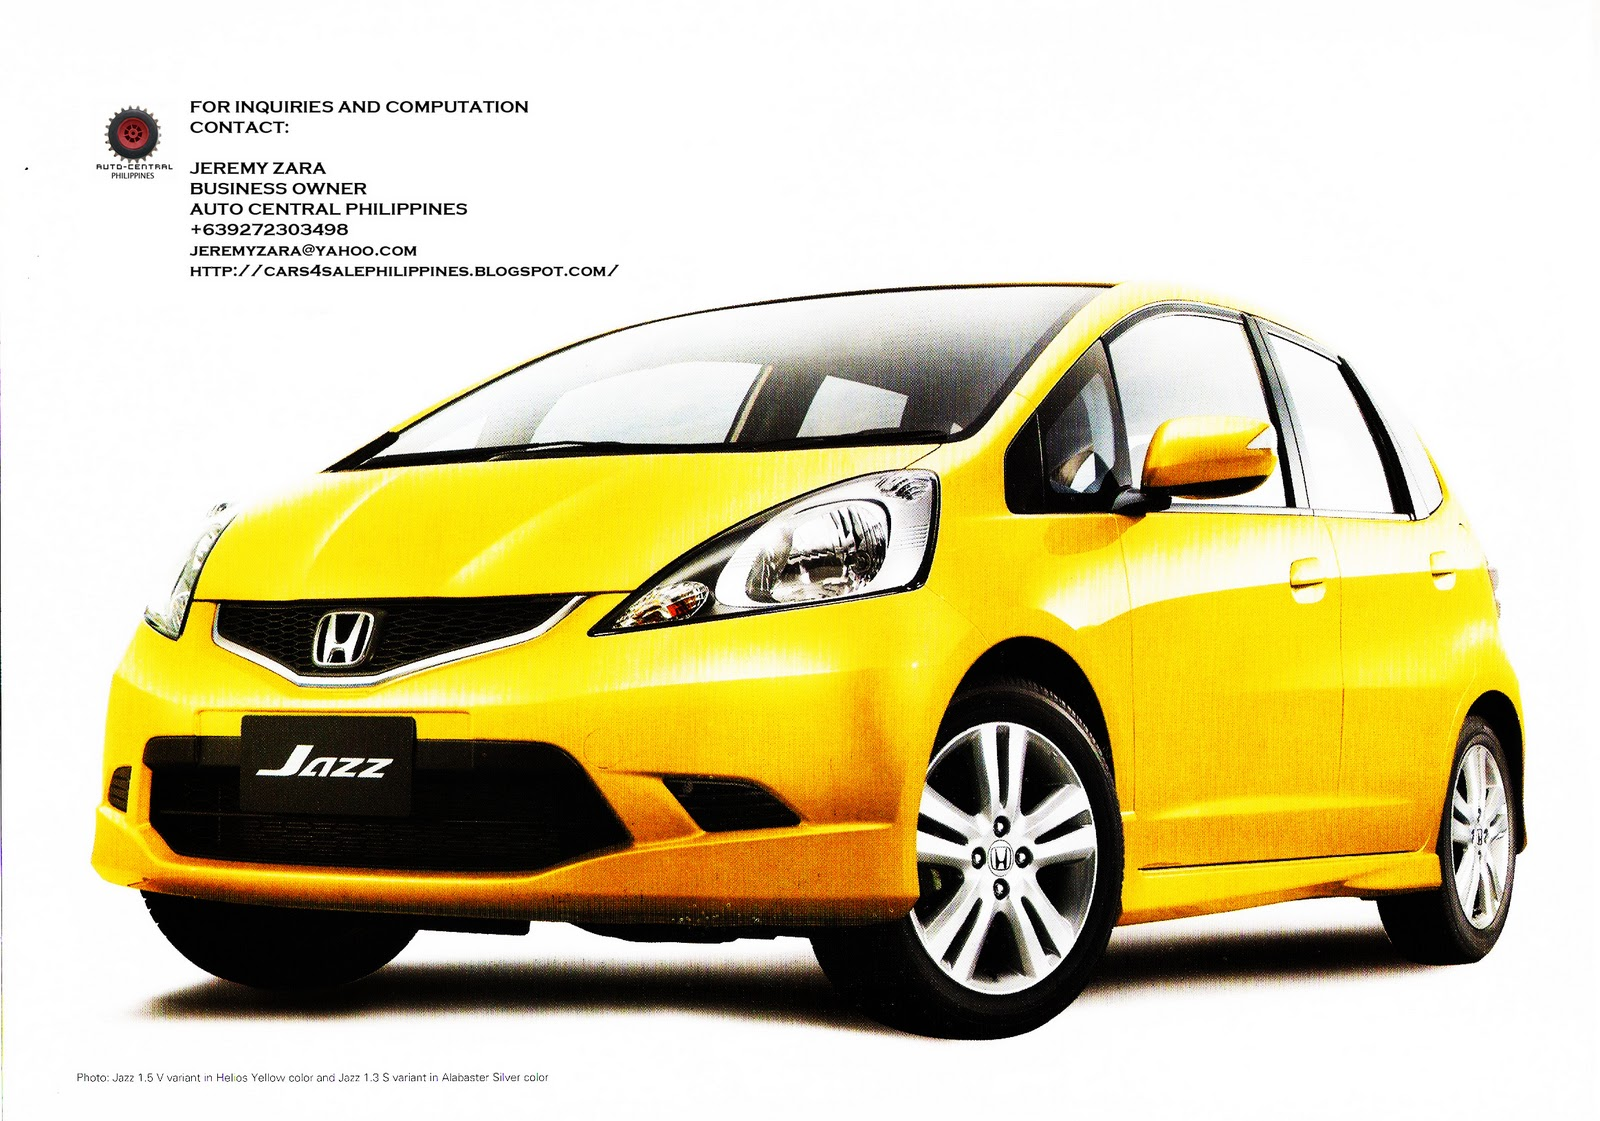 2011 Honda Civic For Sale >> Brand New Cars for Sale: BRAND NEW HONDA JAZZ FOR SALE